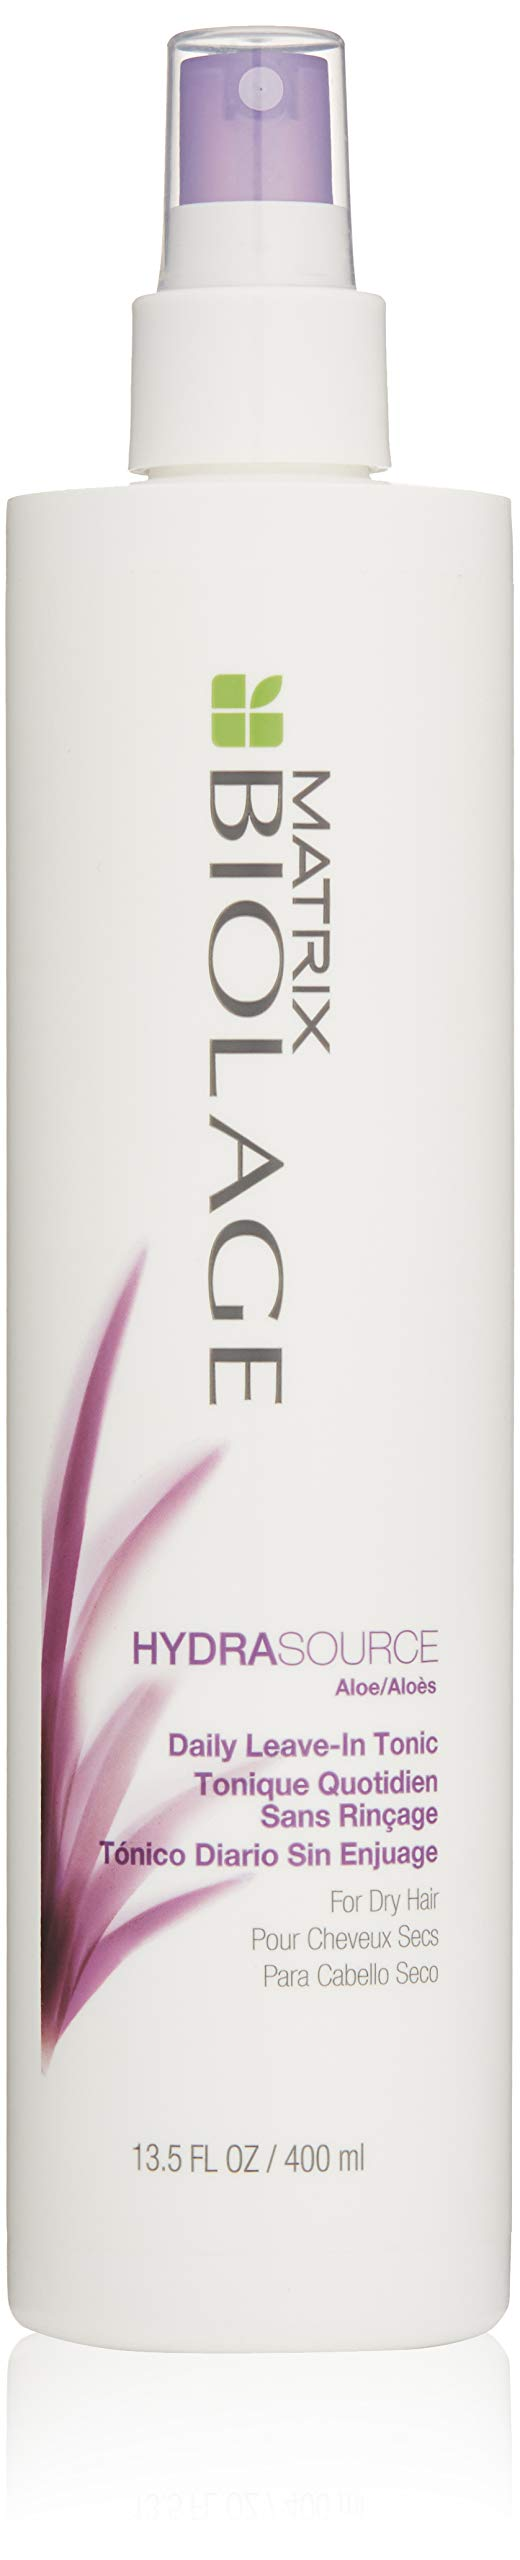 Biolage Hydrasource Daily Leave-In Tonic For Dry Hair, 13.5 Fl. Oz. by BIOLAGE